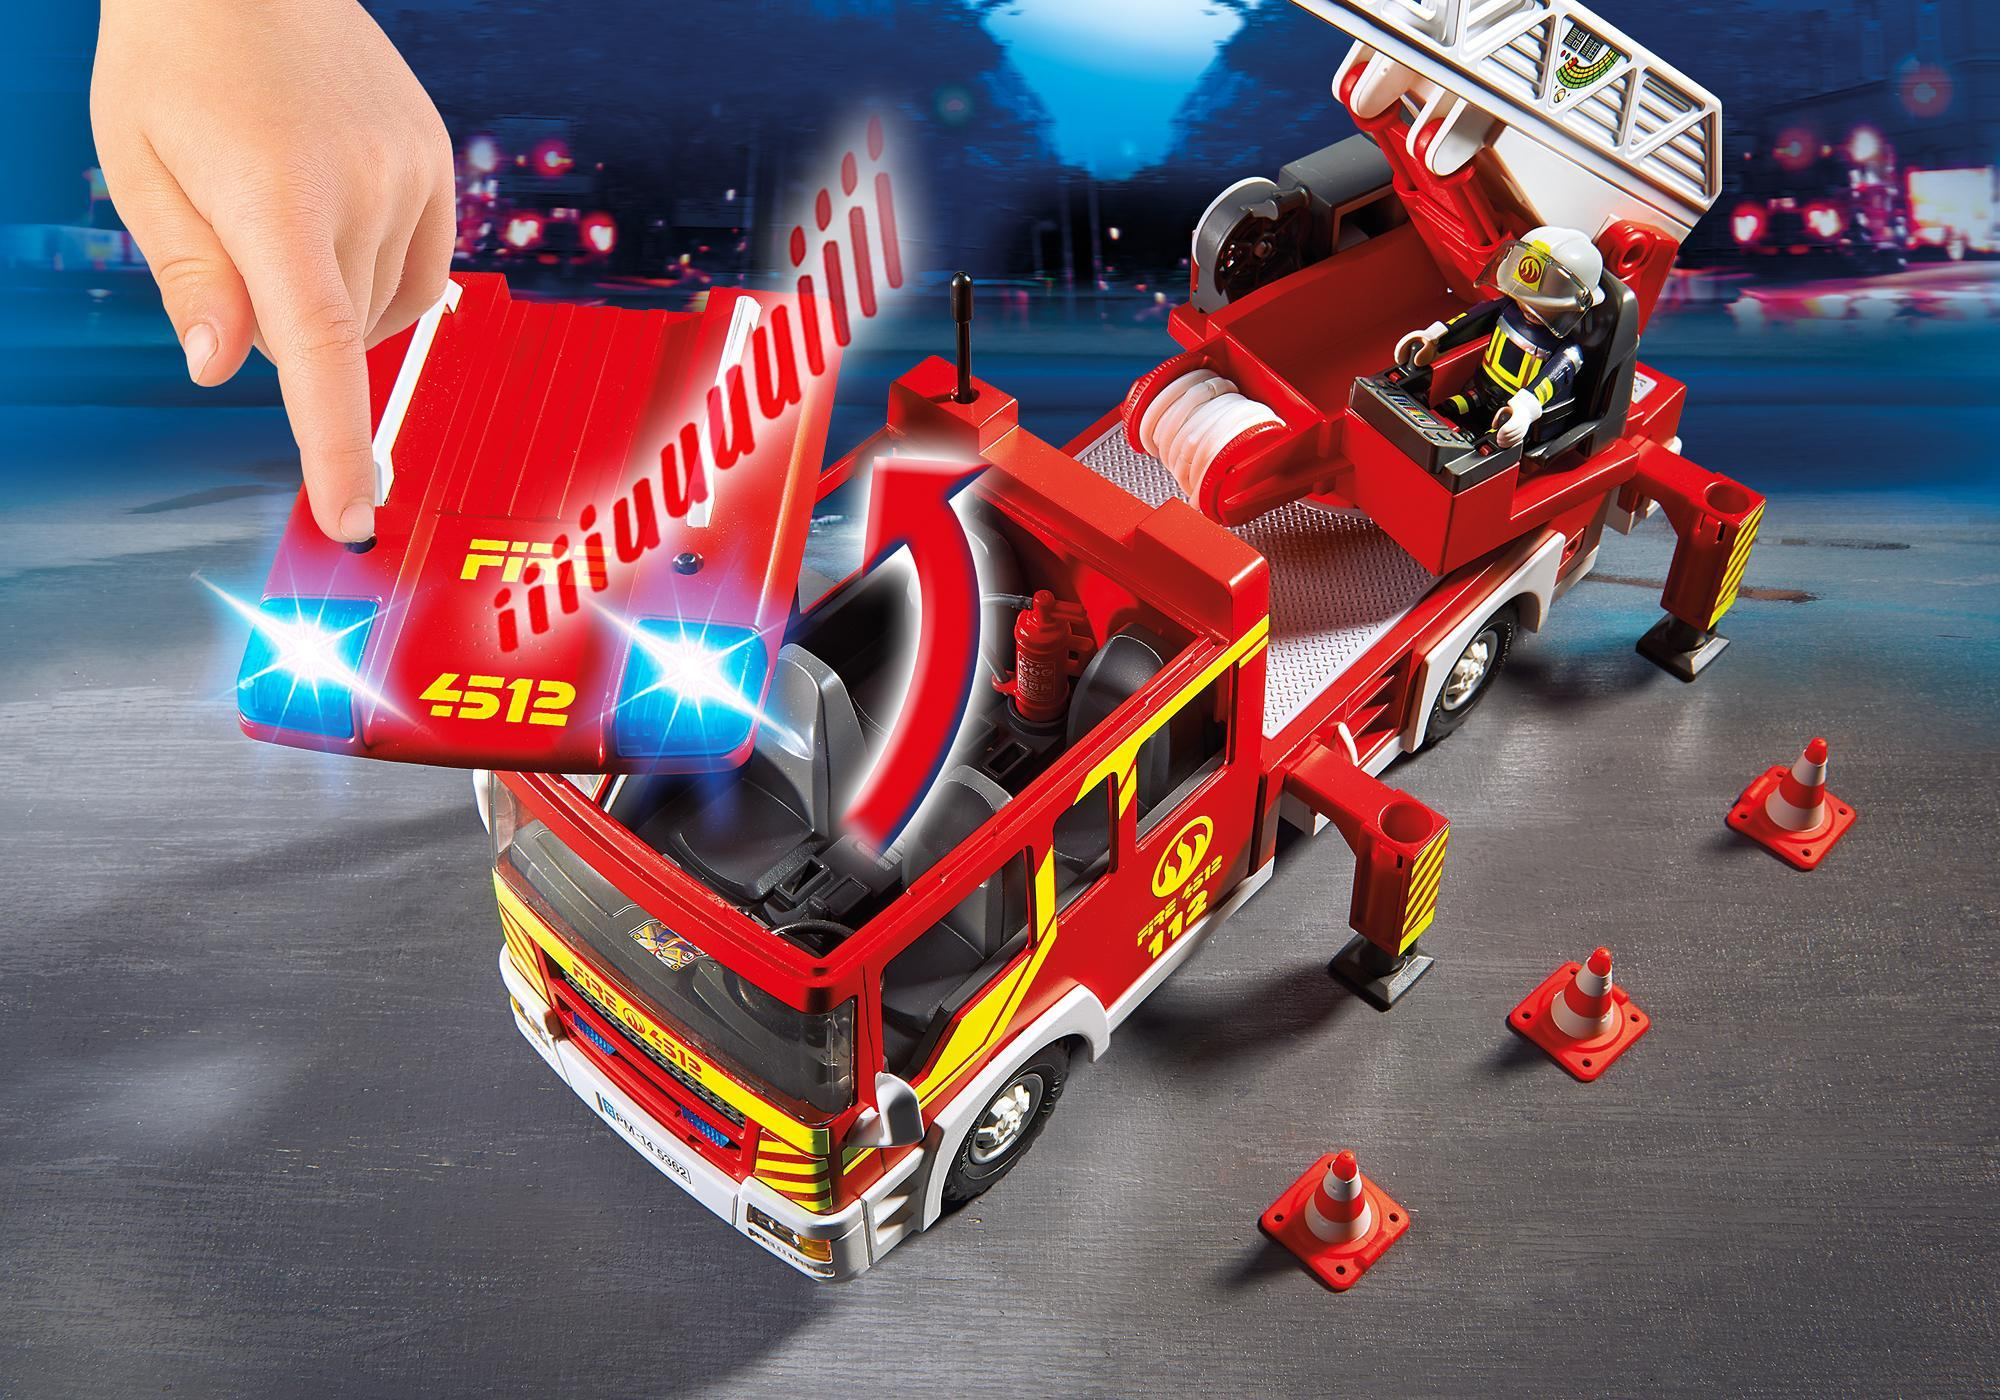 http://media.playmobil.com/i/playmobil/5362_product_extra1/Ladder Unit with Lights and Sound